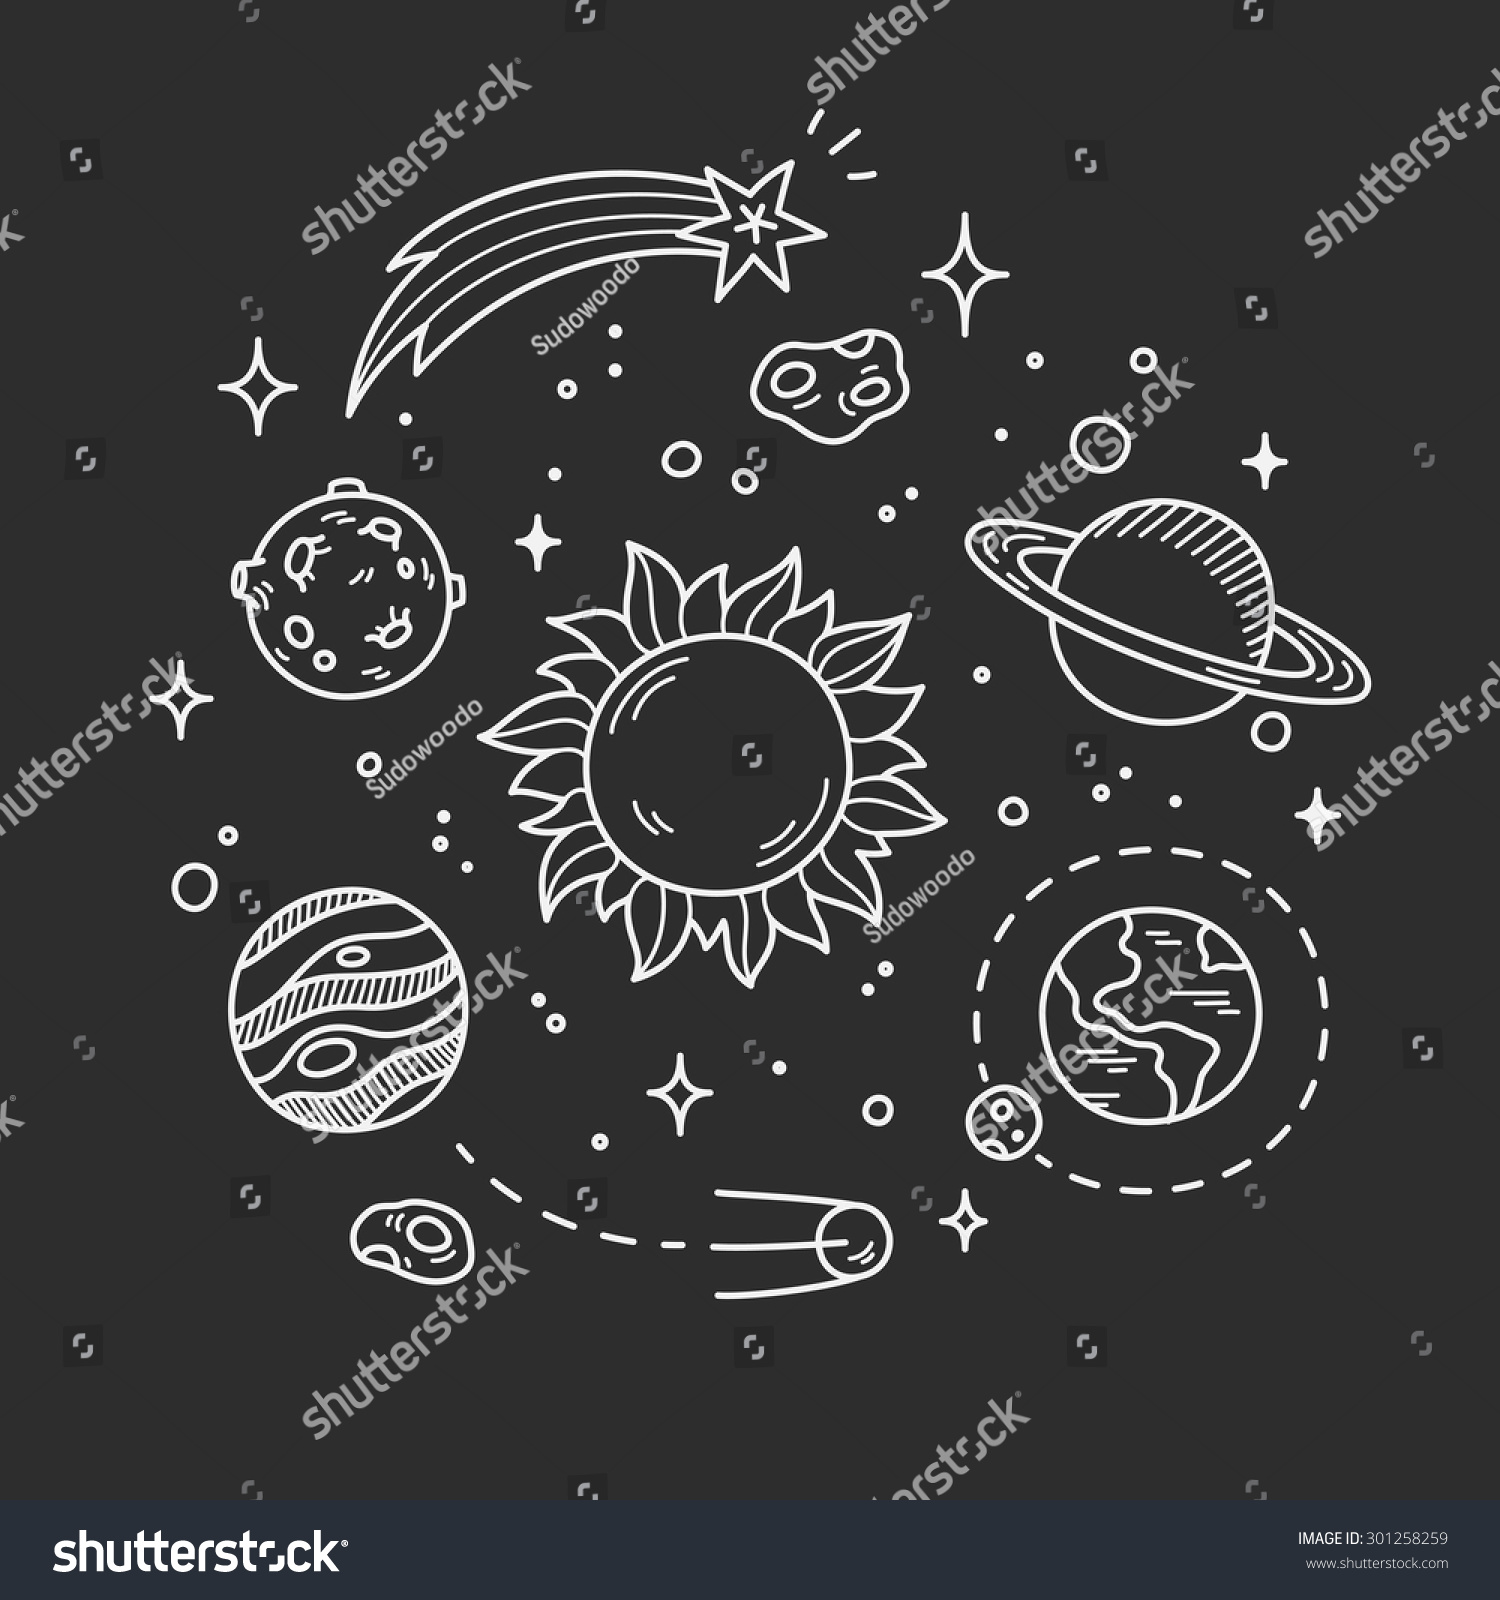 Space Line Art Background Wiring Diagrams Traxxas Slash 4x4 Parts Diagram Lzk Gallery Likewise Hand Drawn Doodle Decorative Stock Vector Royalty Free Rh Shutterstock Com Trippy Backgrounds As